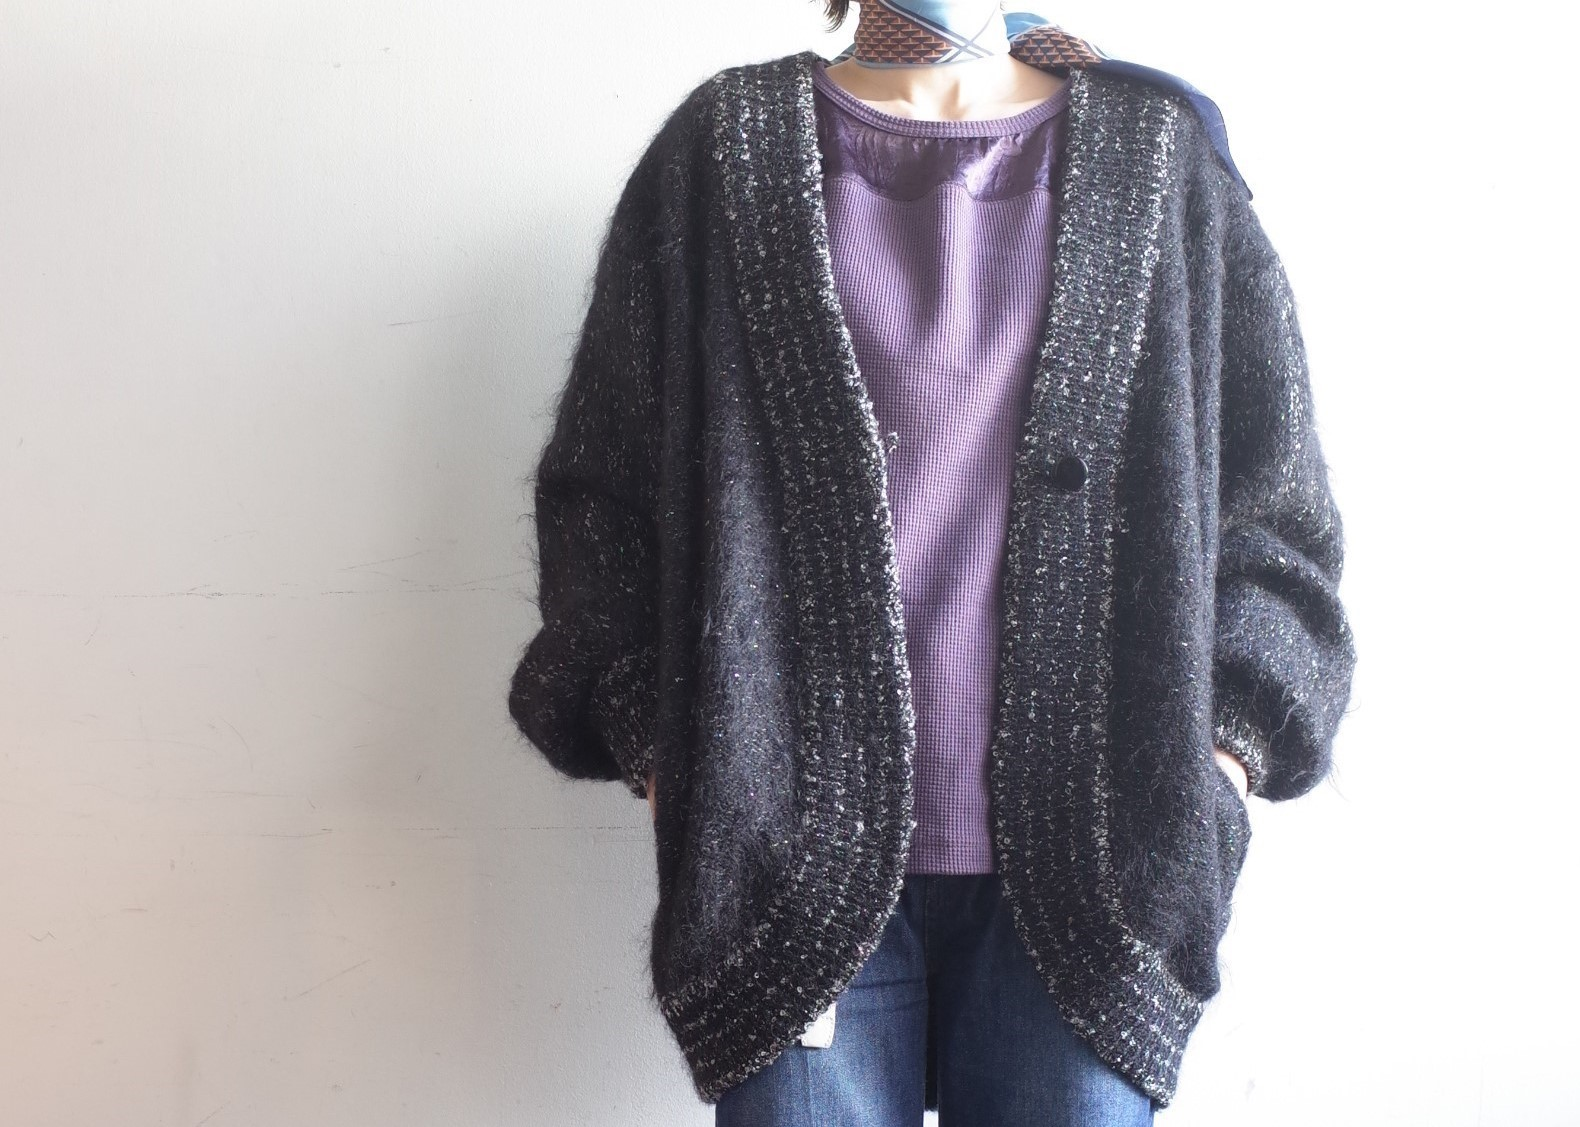 From Vintage Room☆シルバーラメMohair Knit Cardigan☆_e0269968_13440540.jpg